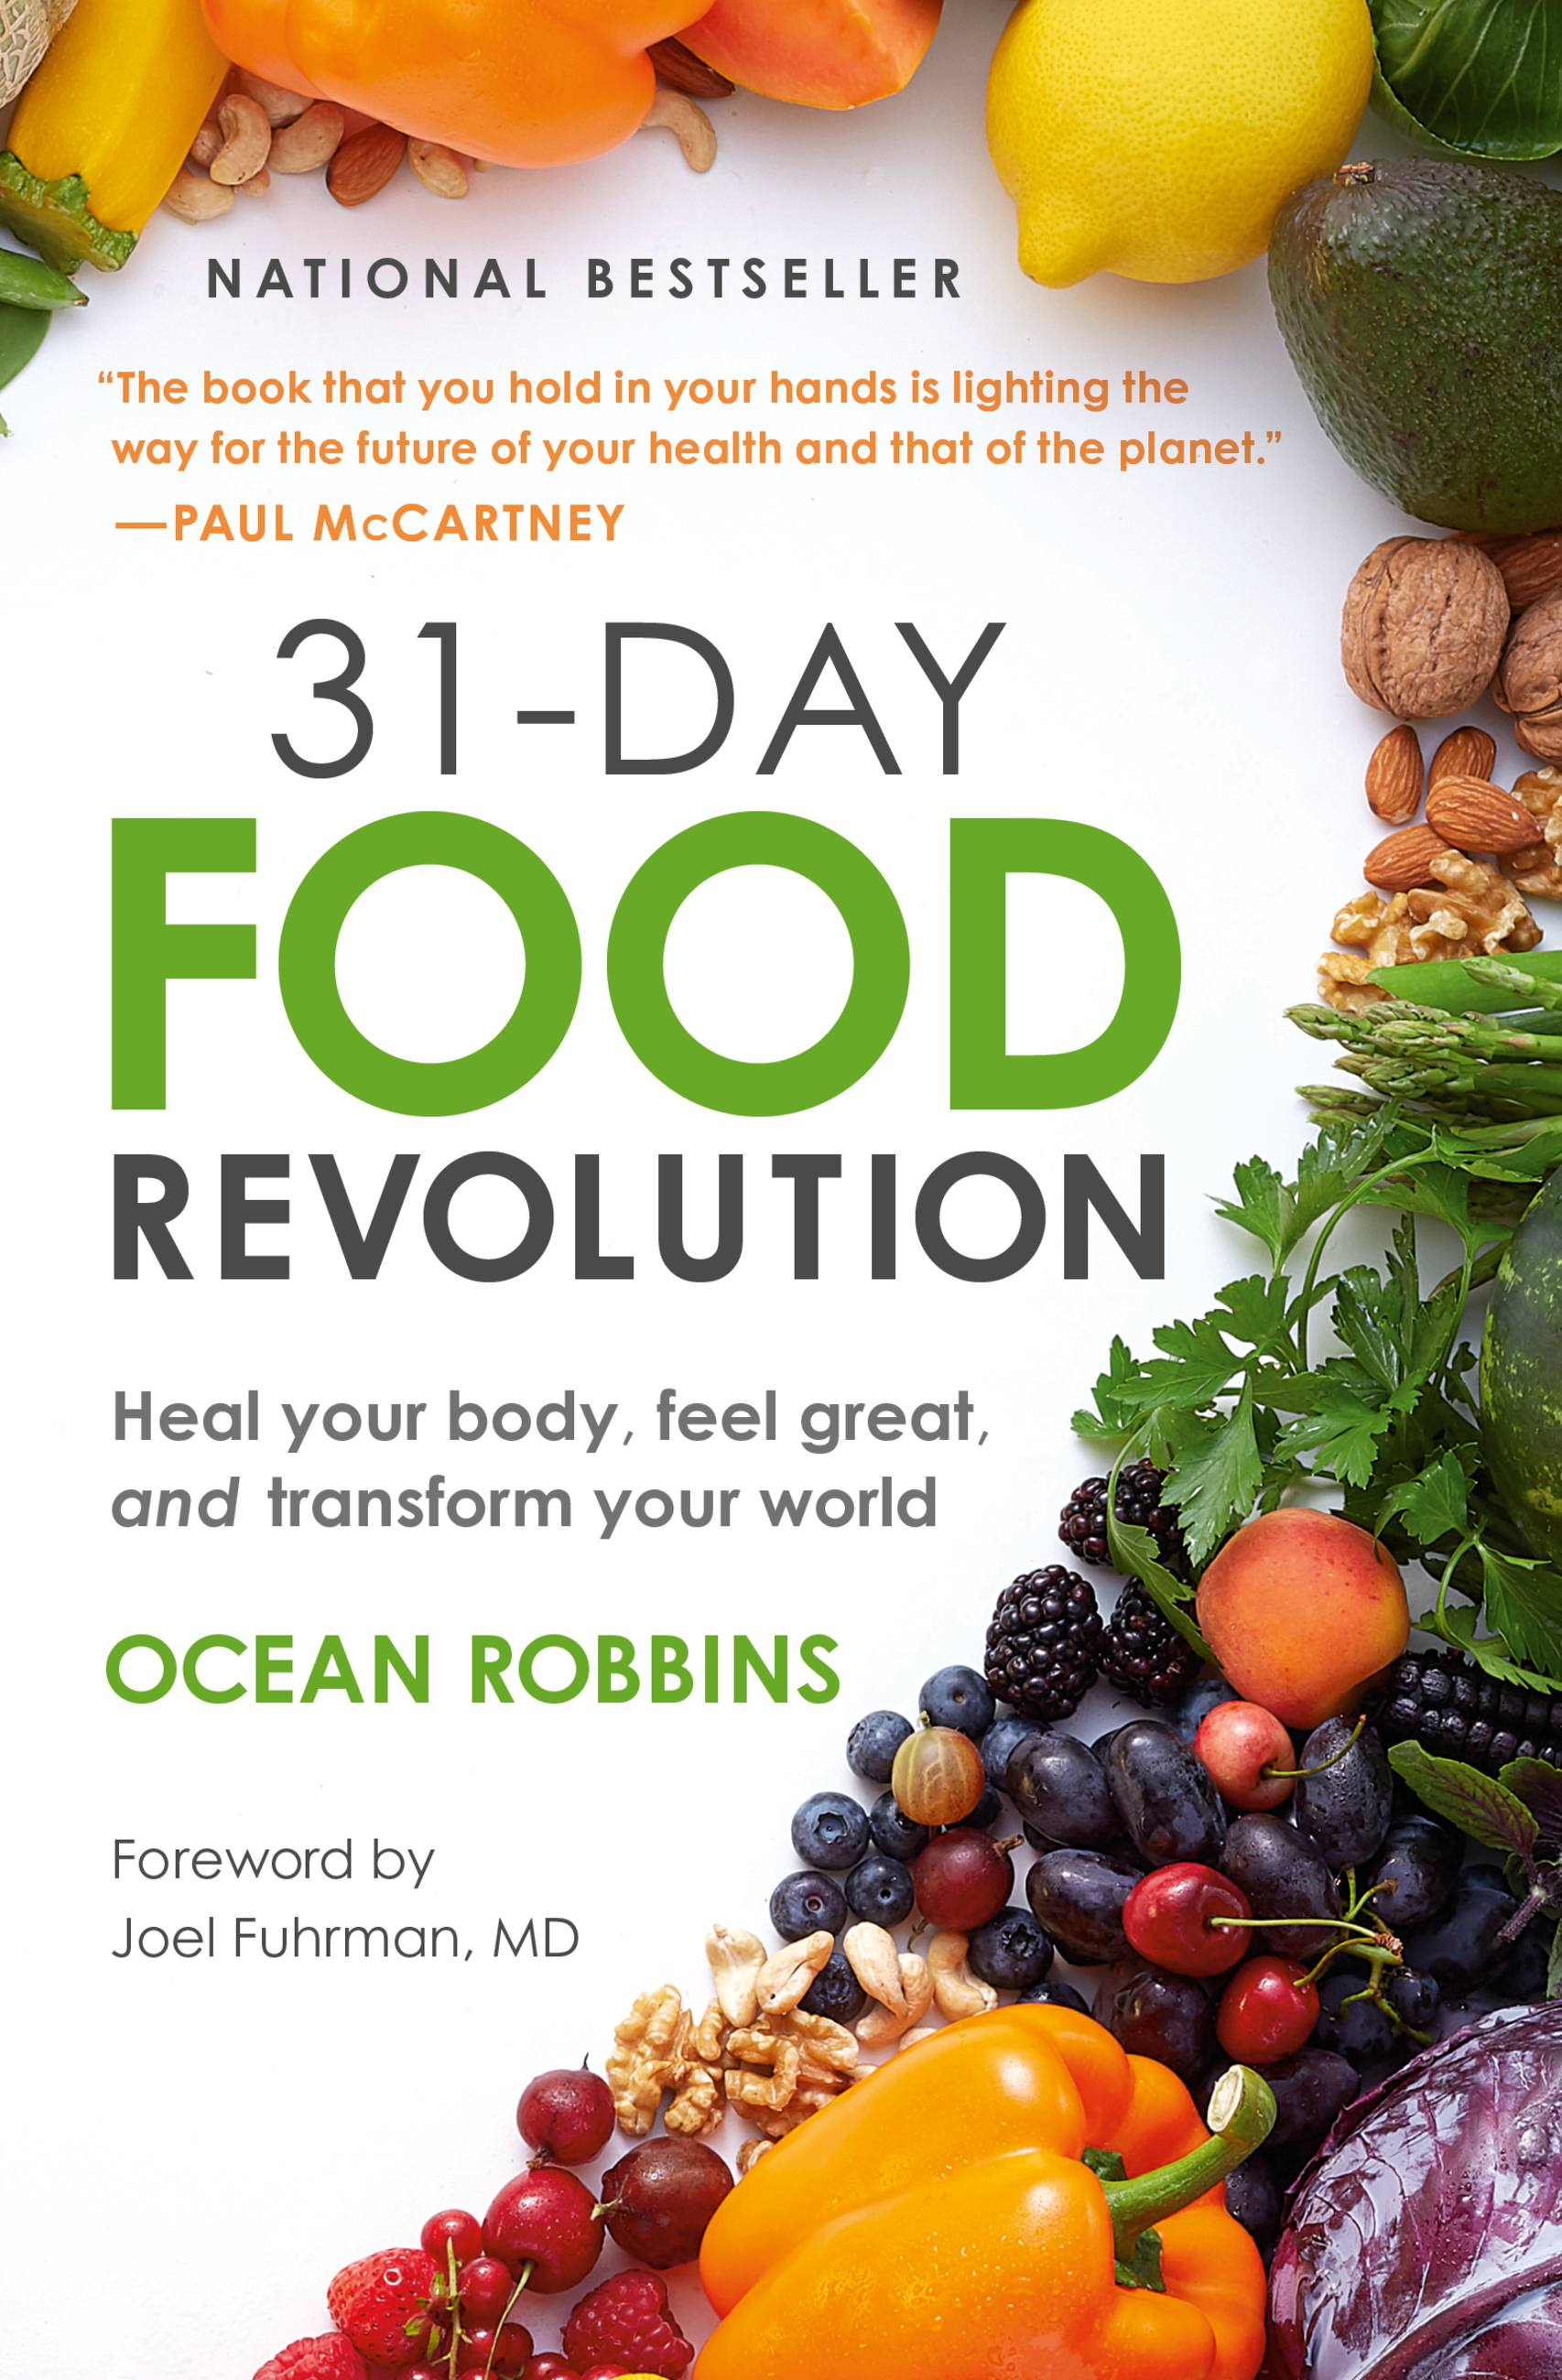 31-Day Food Revolution Heal Your Body, Feel Great, and Transform Your World